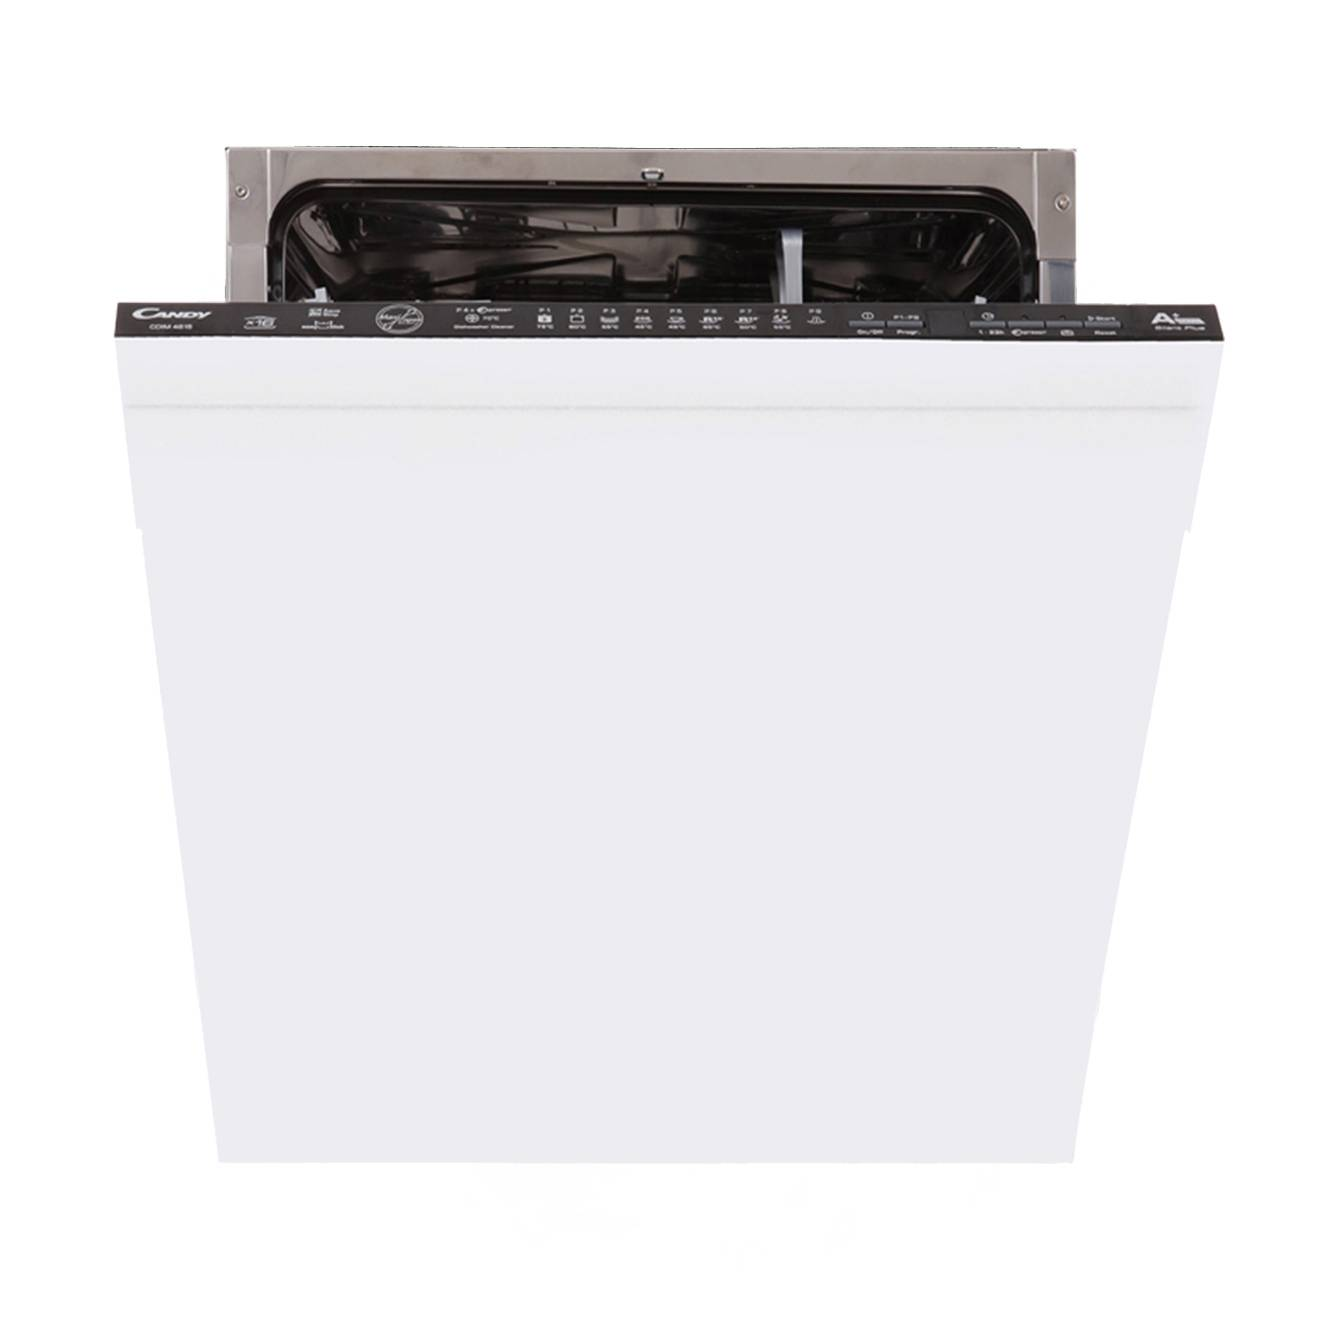 Candy CDIM4615 Built In Fully Integrated Dishwasher - Black